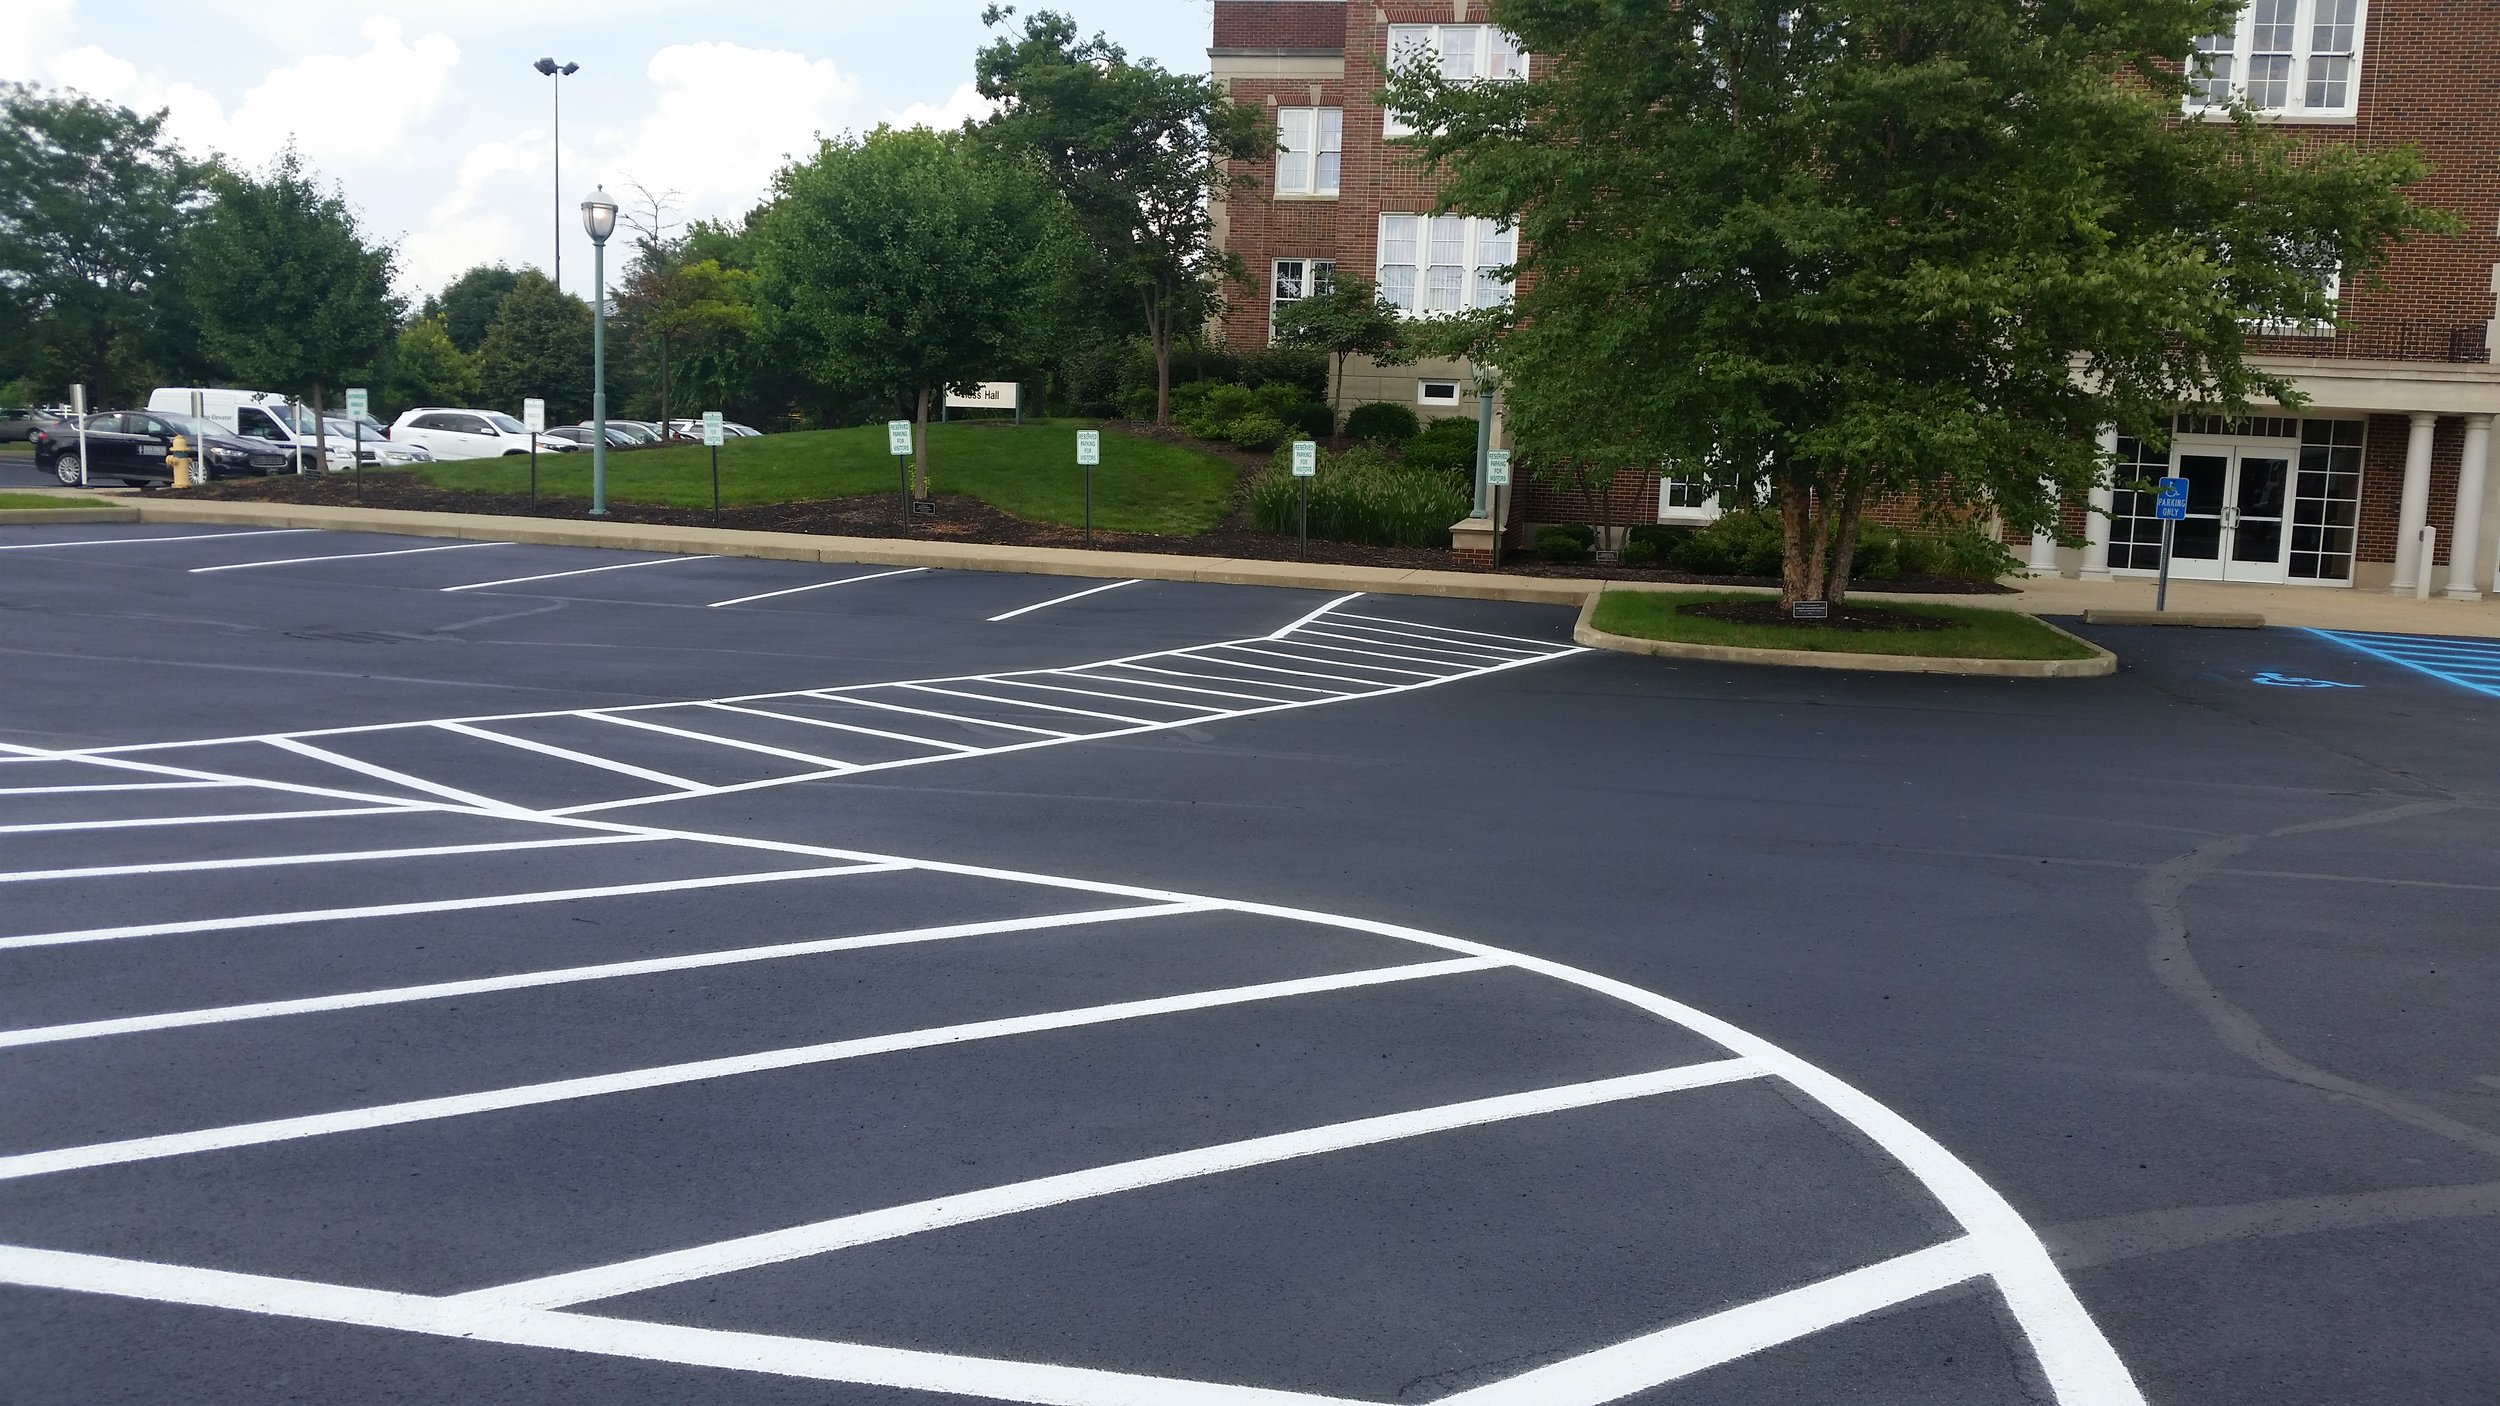 Ivy Tech parking lot striping Lafayette, IN